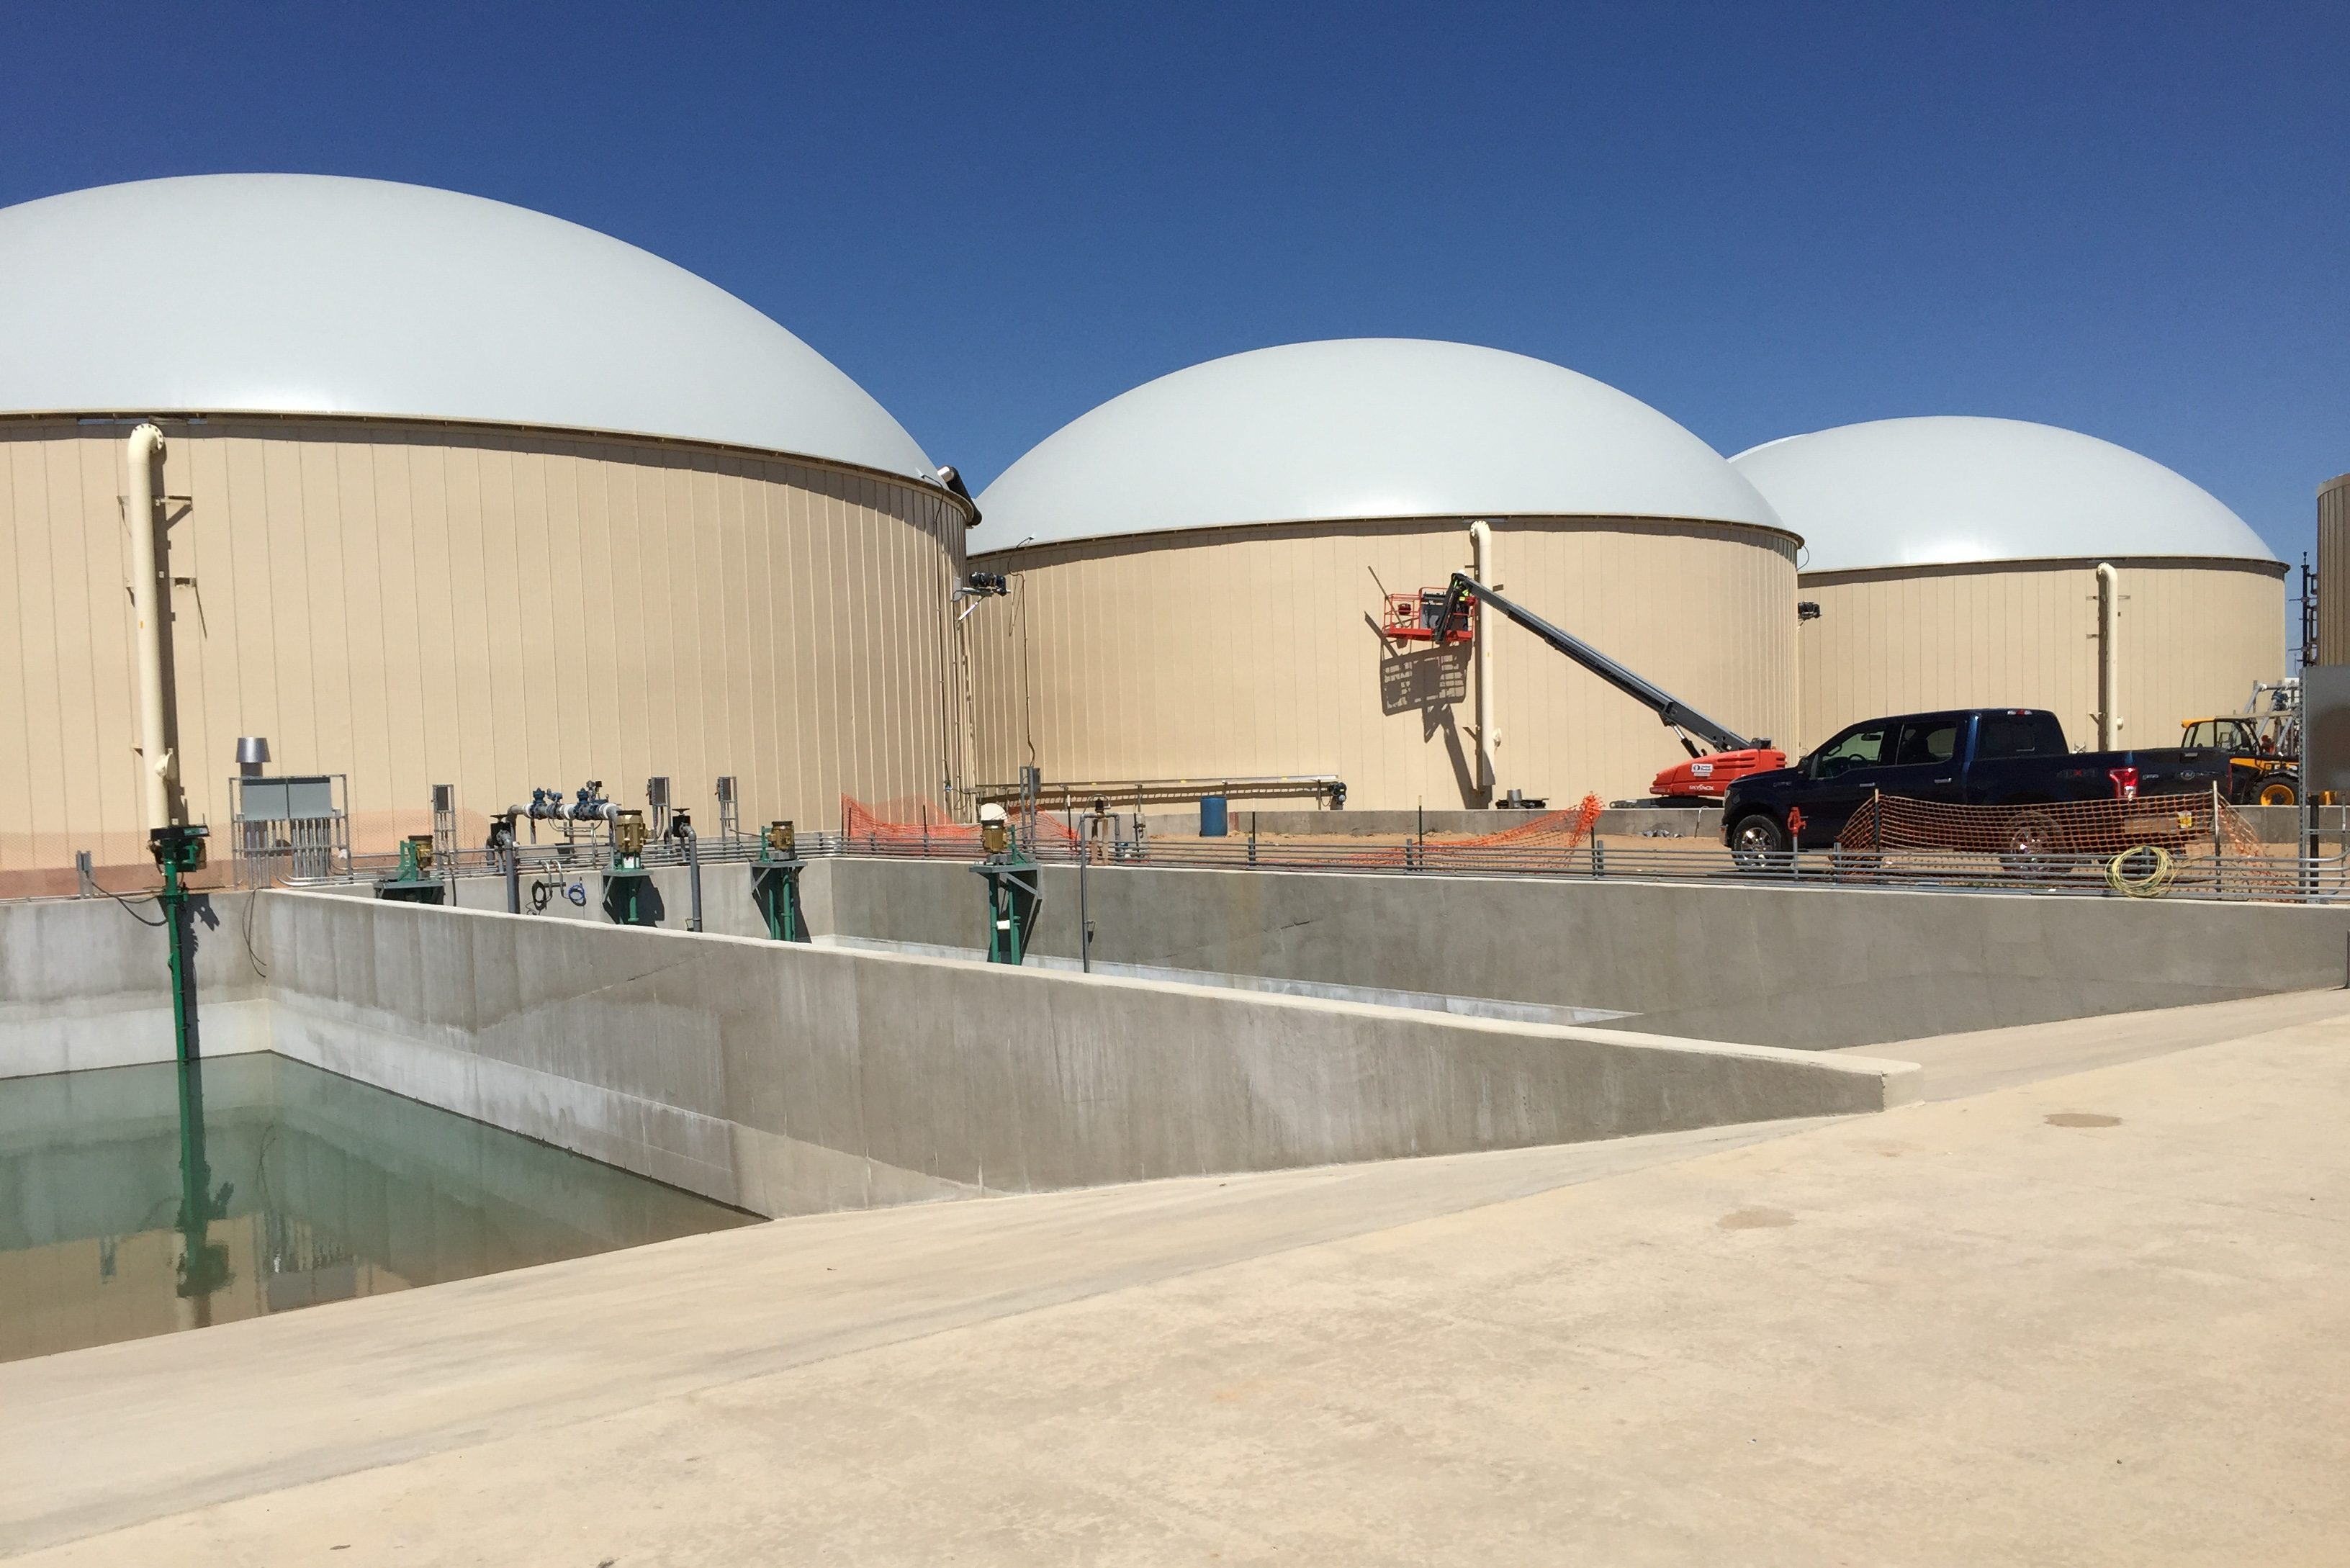 RNG Energy Solutions has formed a joint venture with Philadelphia Energy Solutions, called Point Breeze Renewable Energy, to produce biogas from food waste for use as a transportation fuel. The company´s Heartland Biogas Project near Denver, shown here, converts organic waste into methane gas.